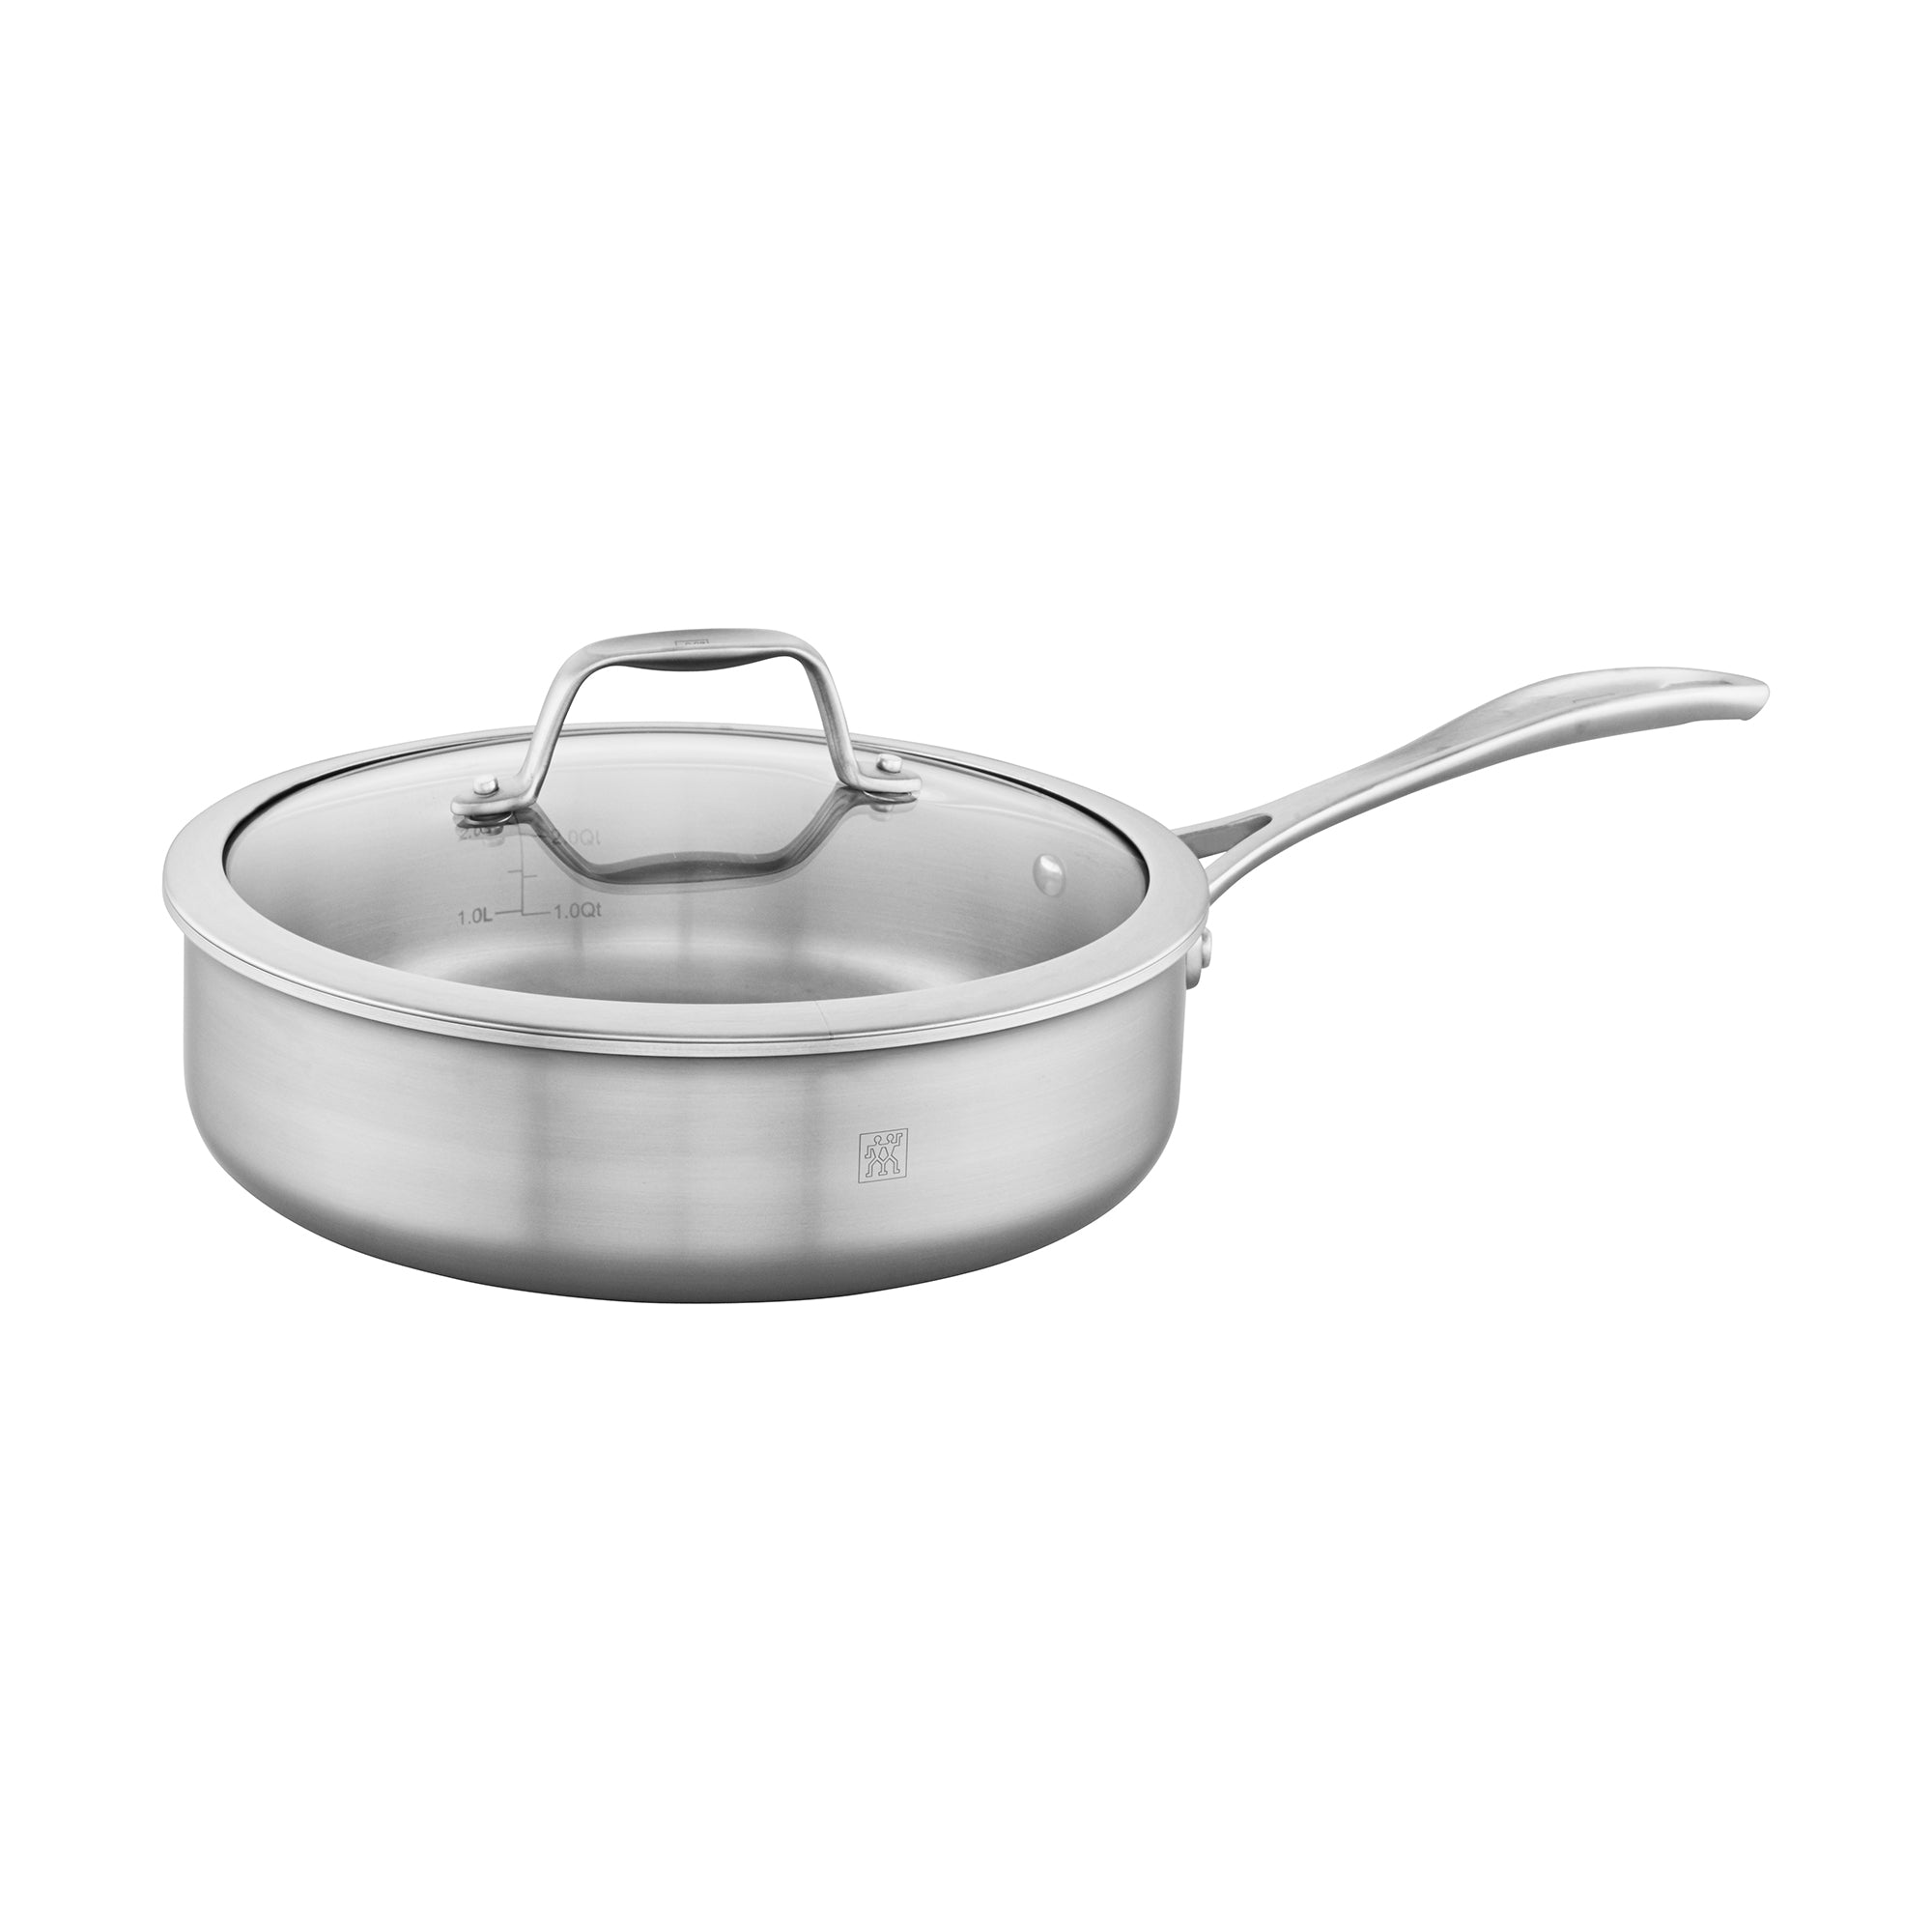 Zwilling Spirit Tri-ply 3-qt Stainless Steel Saute Pan